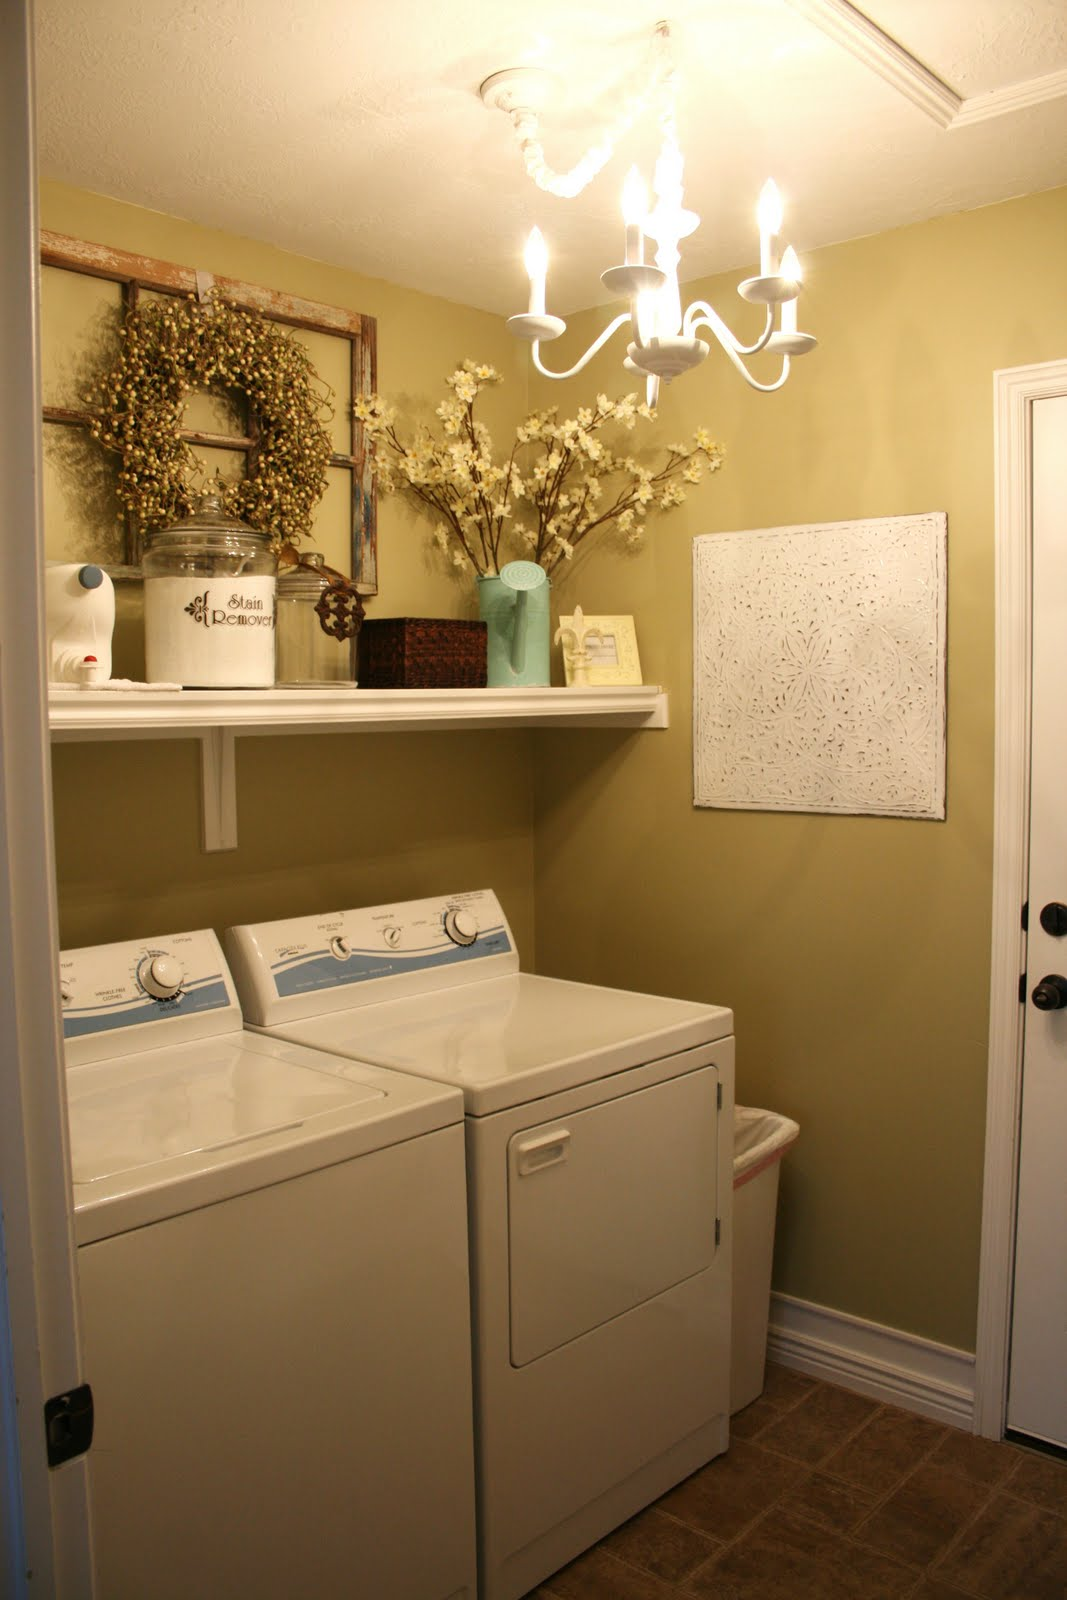 Sassy sites home tour the laundry room - Laundry room design ideas ...